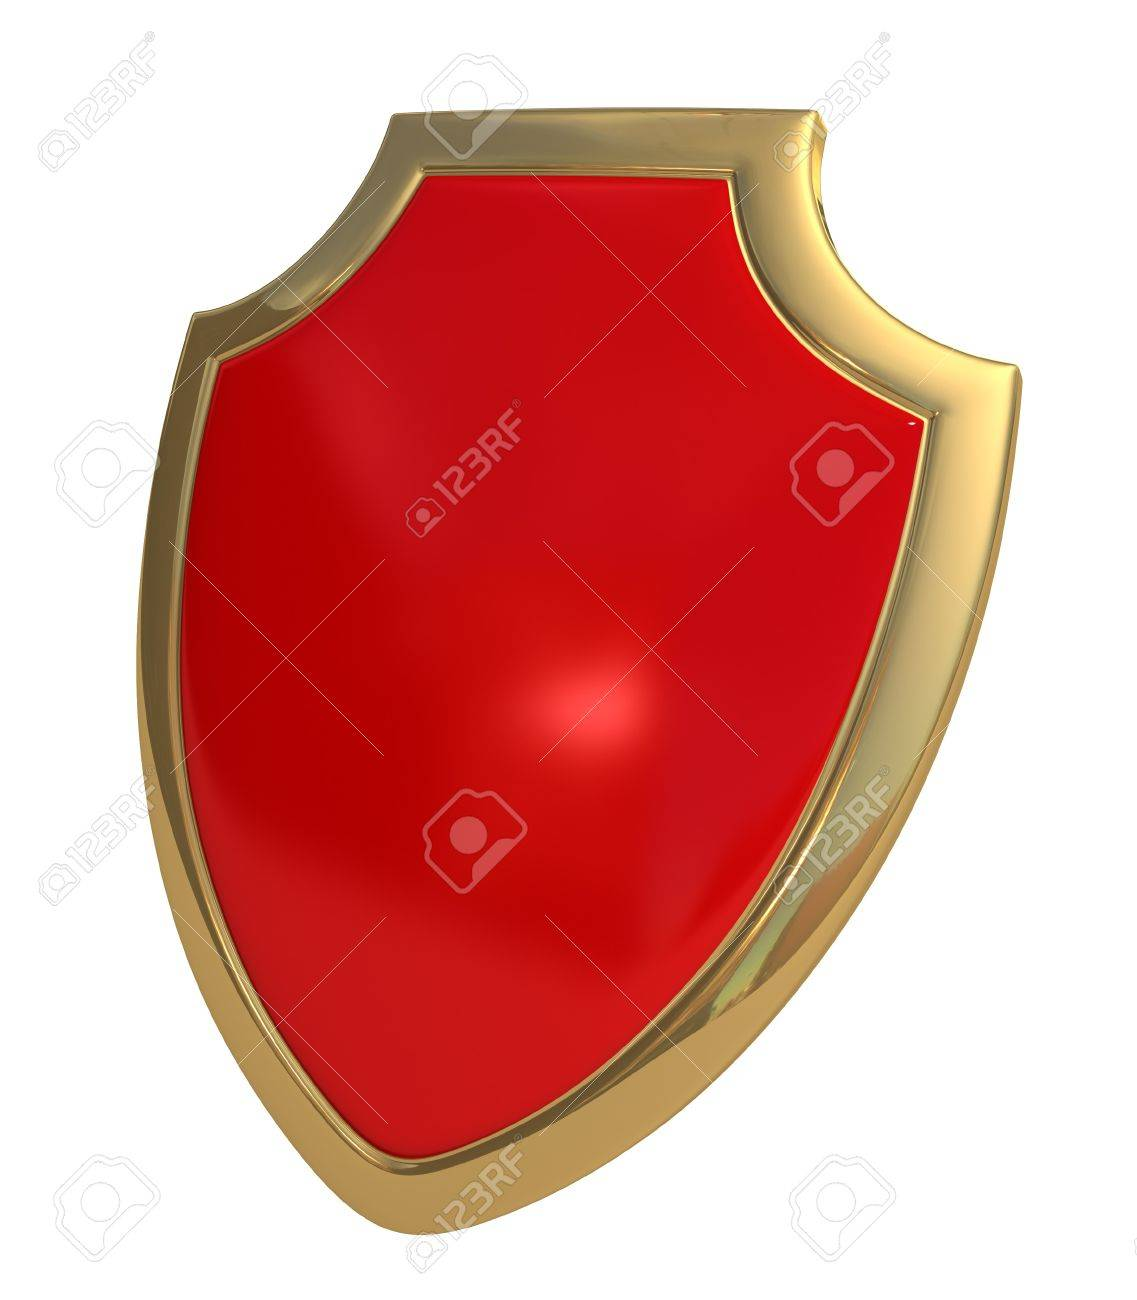 Three-dimensional model - a shield made of gold and enamel. - 7744357